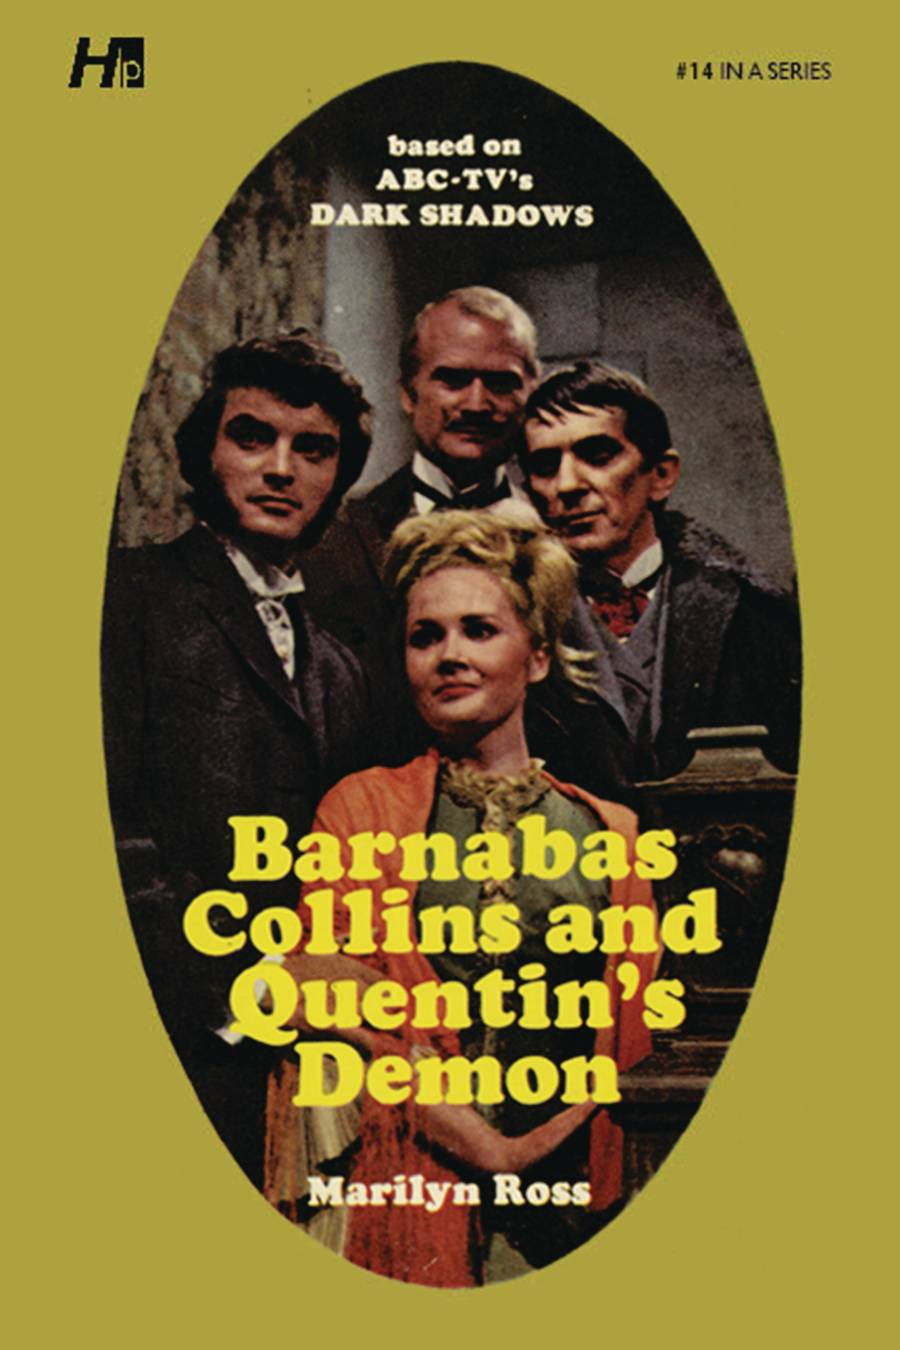 DARK SHADOWS PAPERBACK LIBRARY NOVEL 14 QUENTINS DEMON